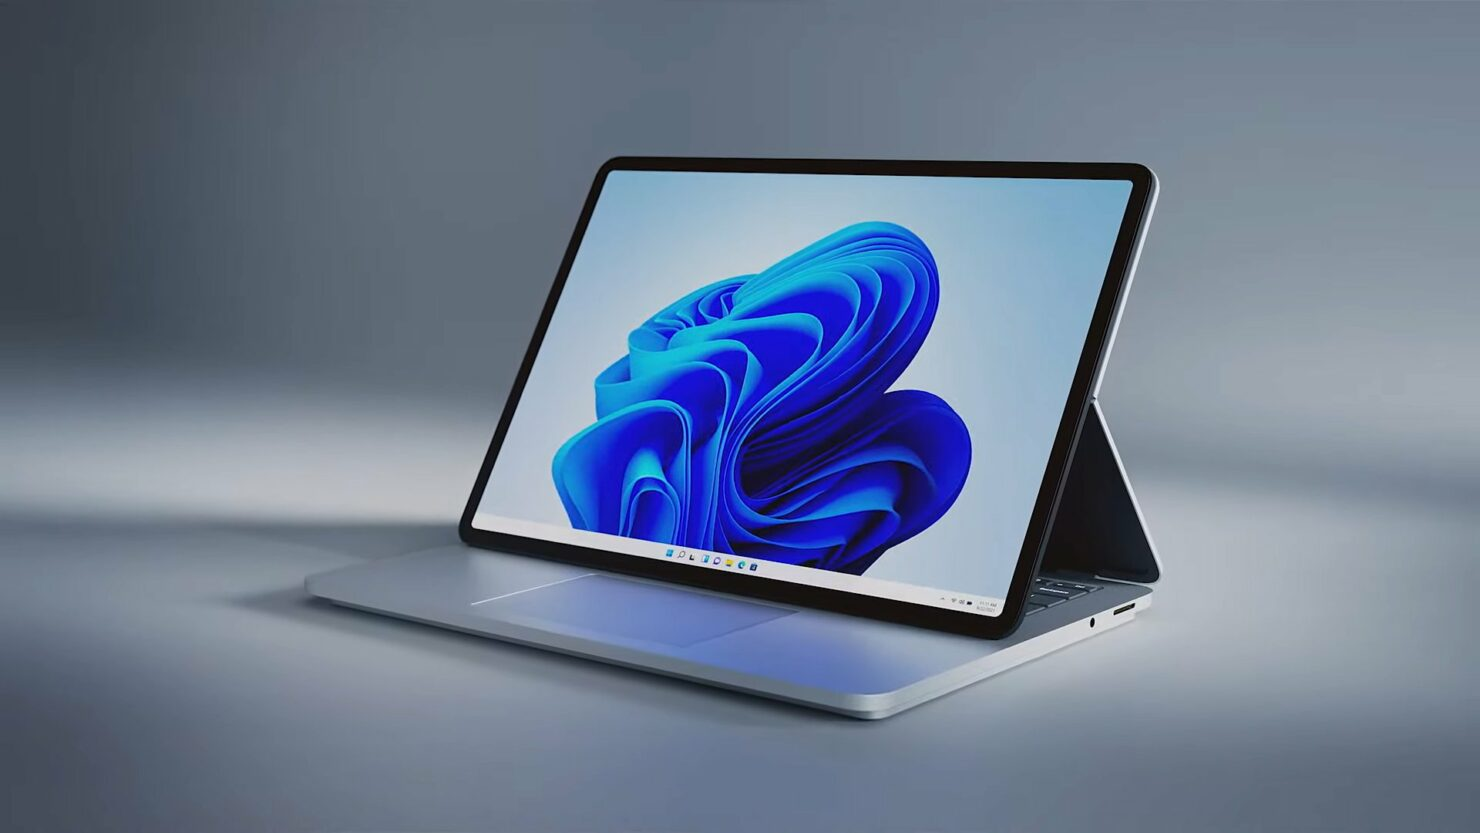 Surface Laptop Studio Gets a Major Redesign - Now Features Flexible Hinge That Changes Display Mode Depending on What You Are Doing